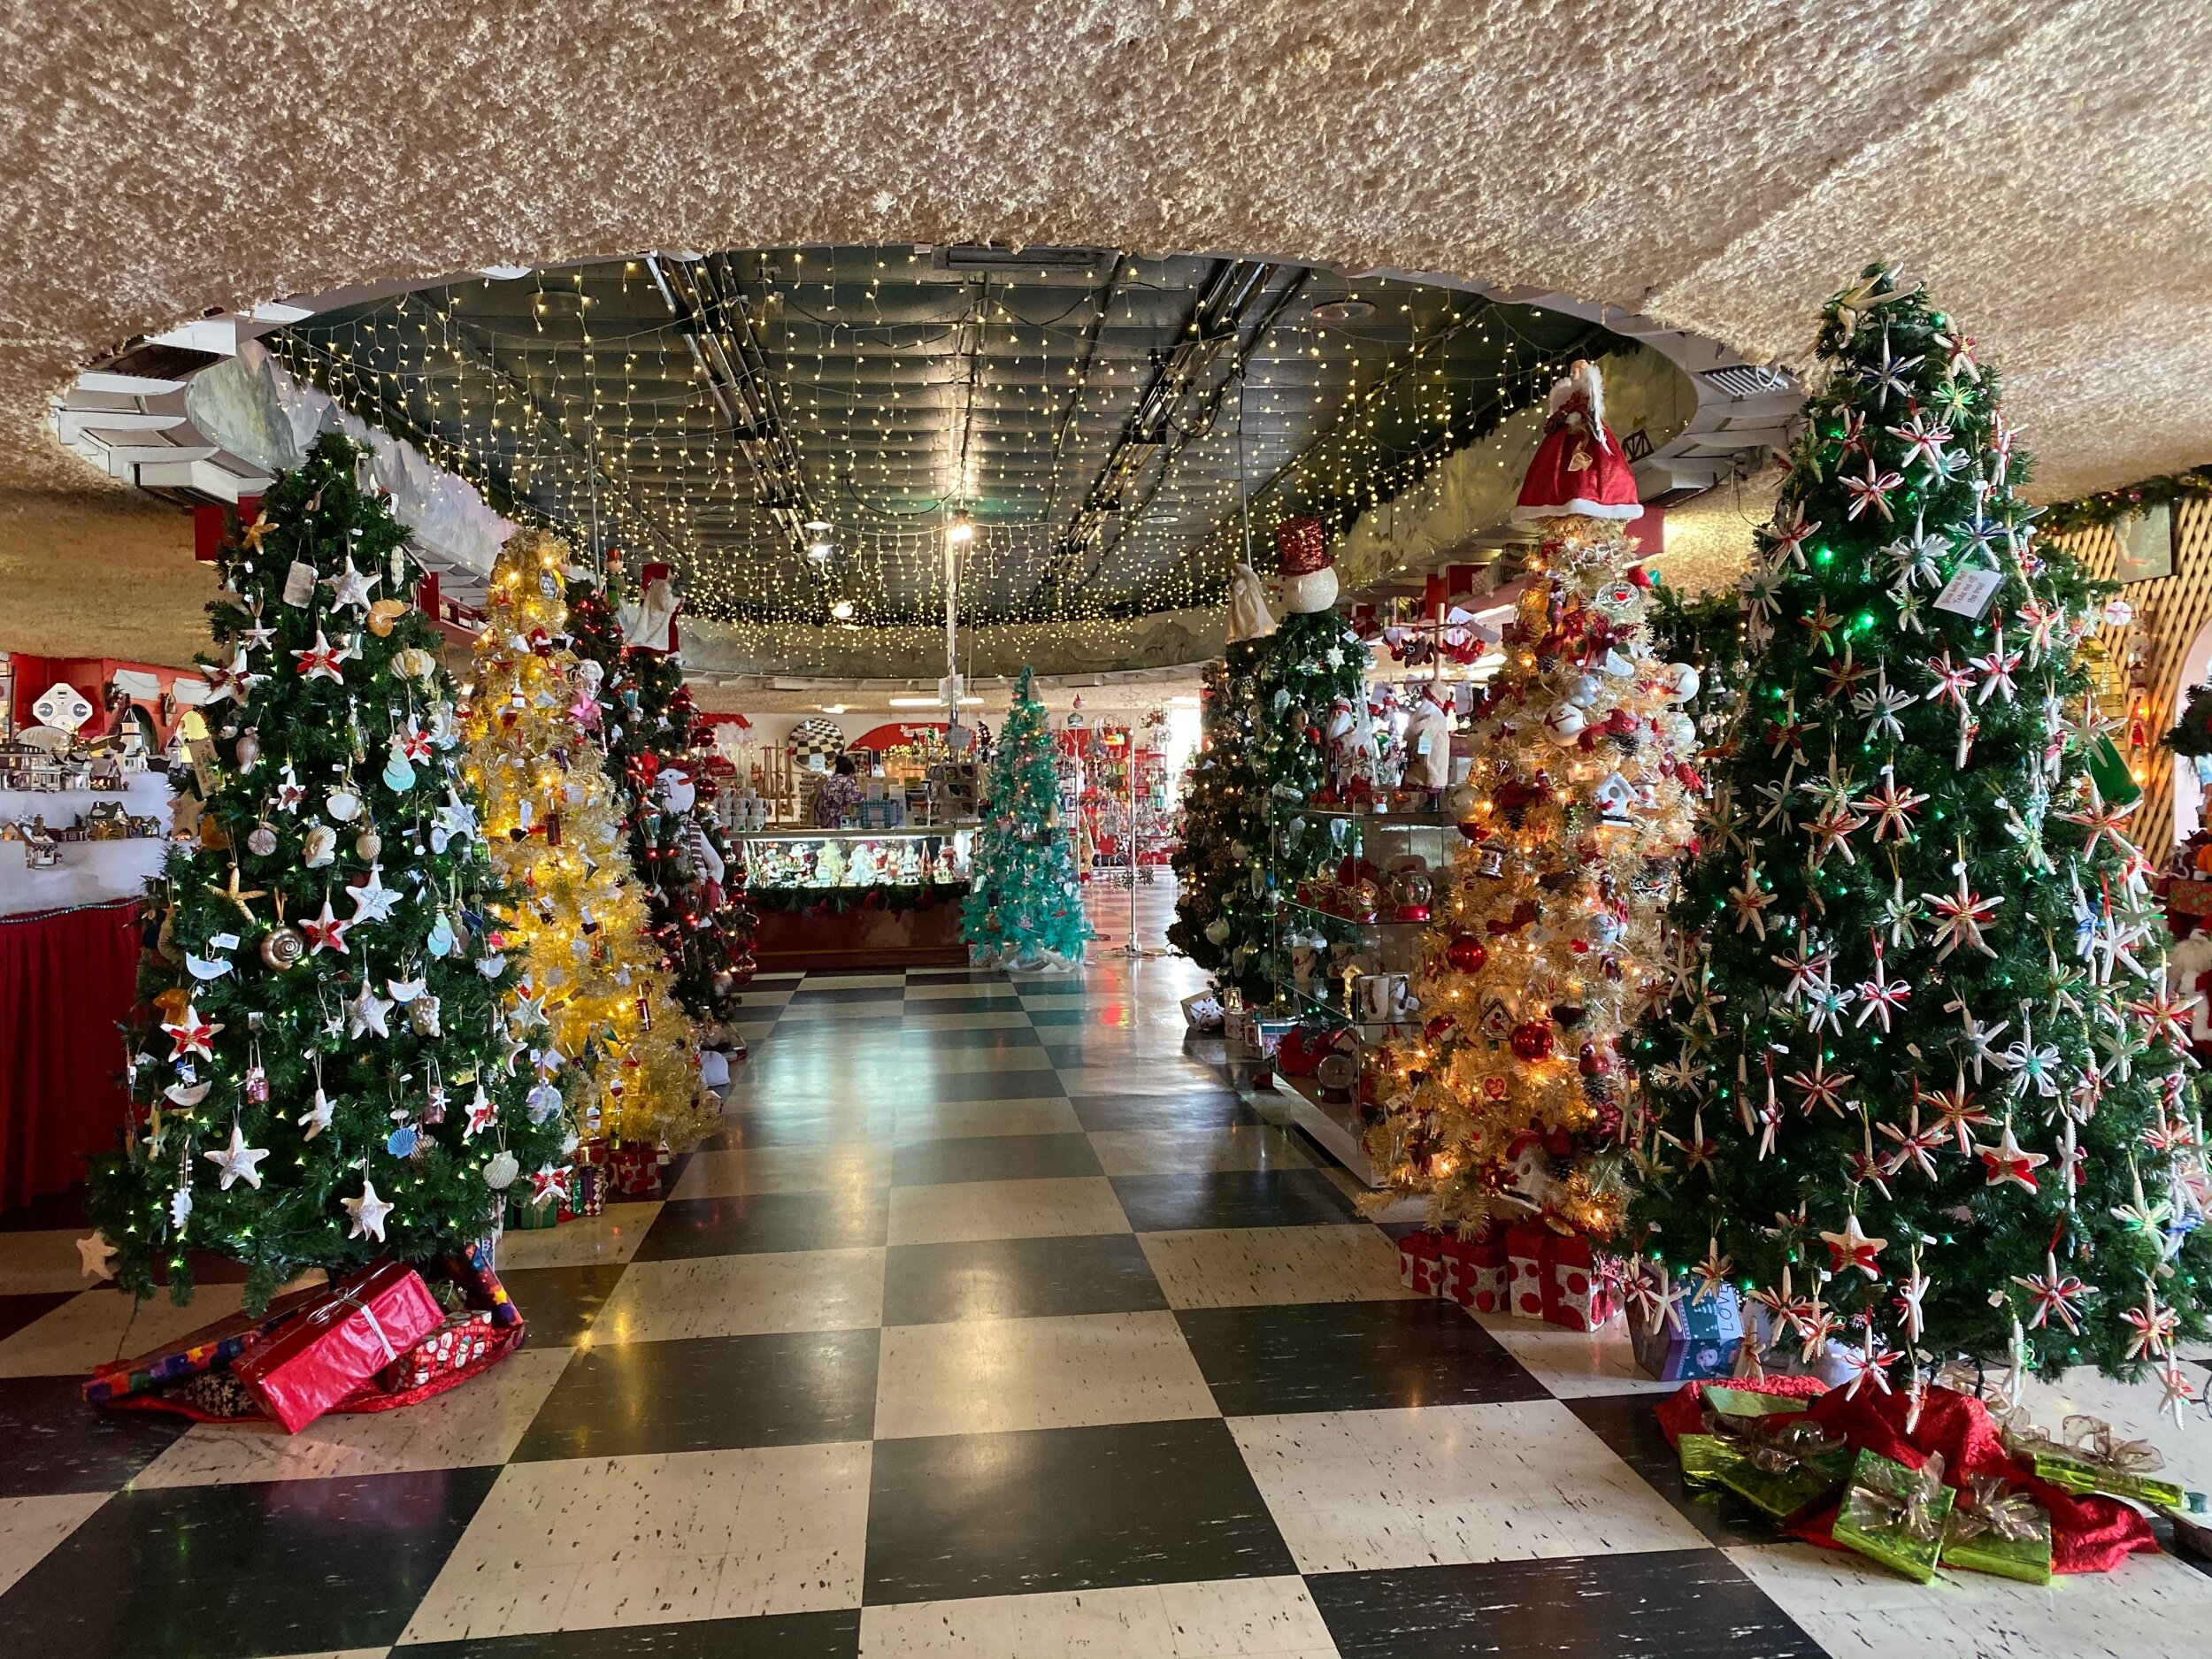 The Christmas house has rooms full of trees and don't miss the photo op with Santa around the corner.